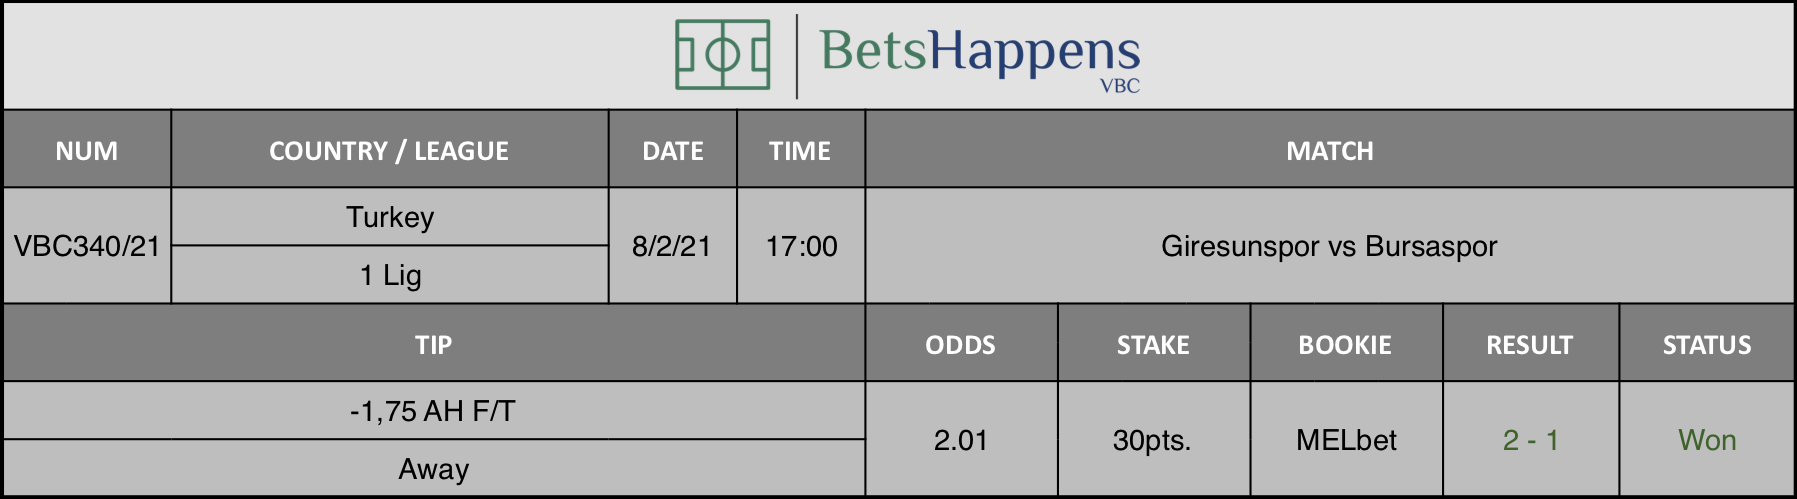 Results of our tip for the Giresunspor vs Bursaspor match where -1,75 AH F/T Away is recommended.